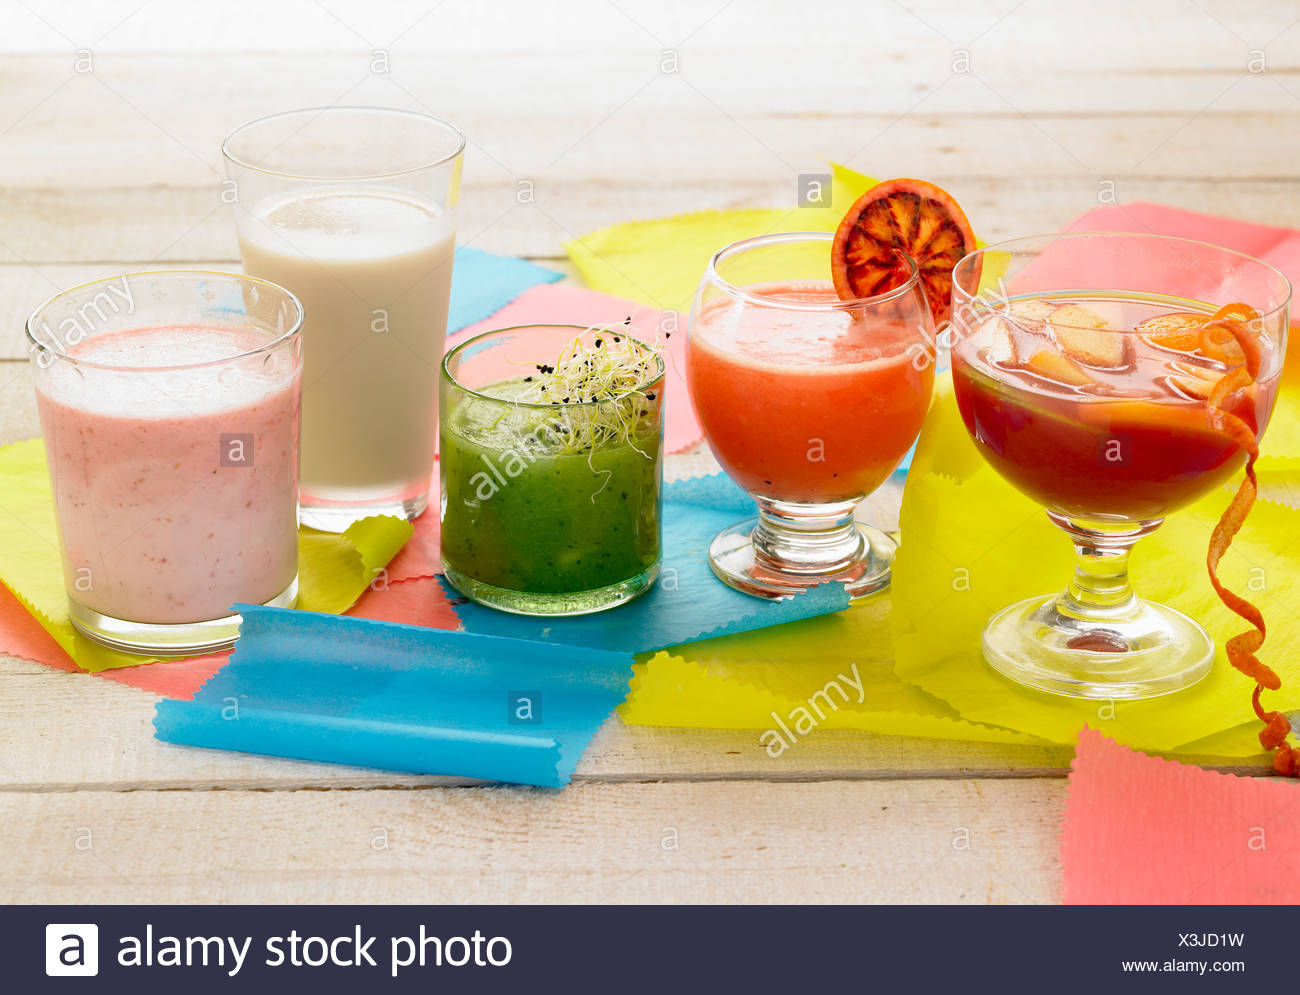 Selection of drinks - Stock Image